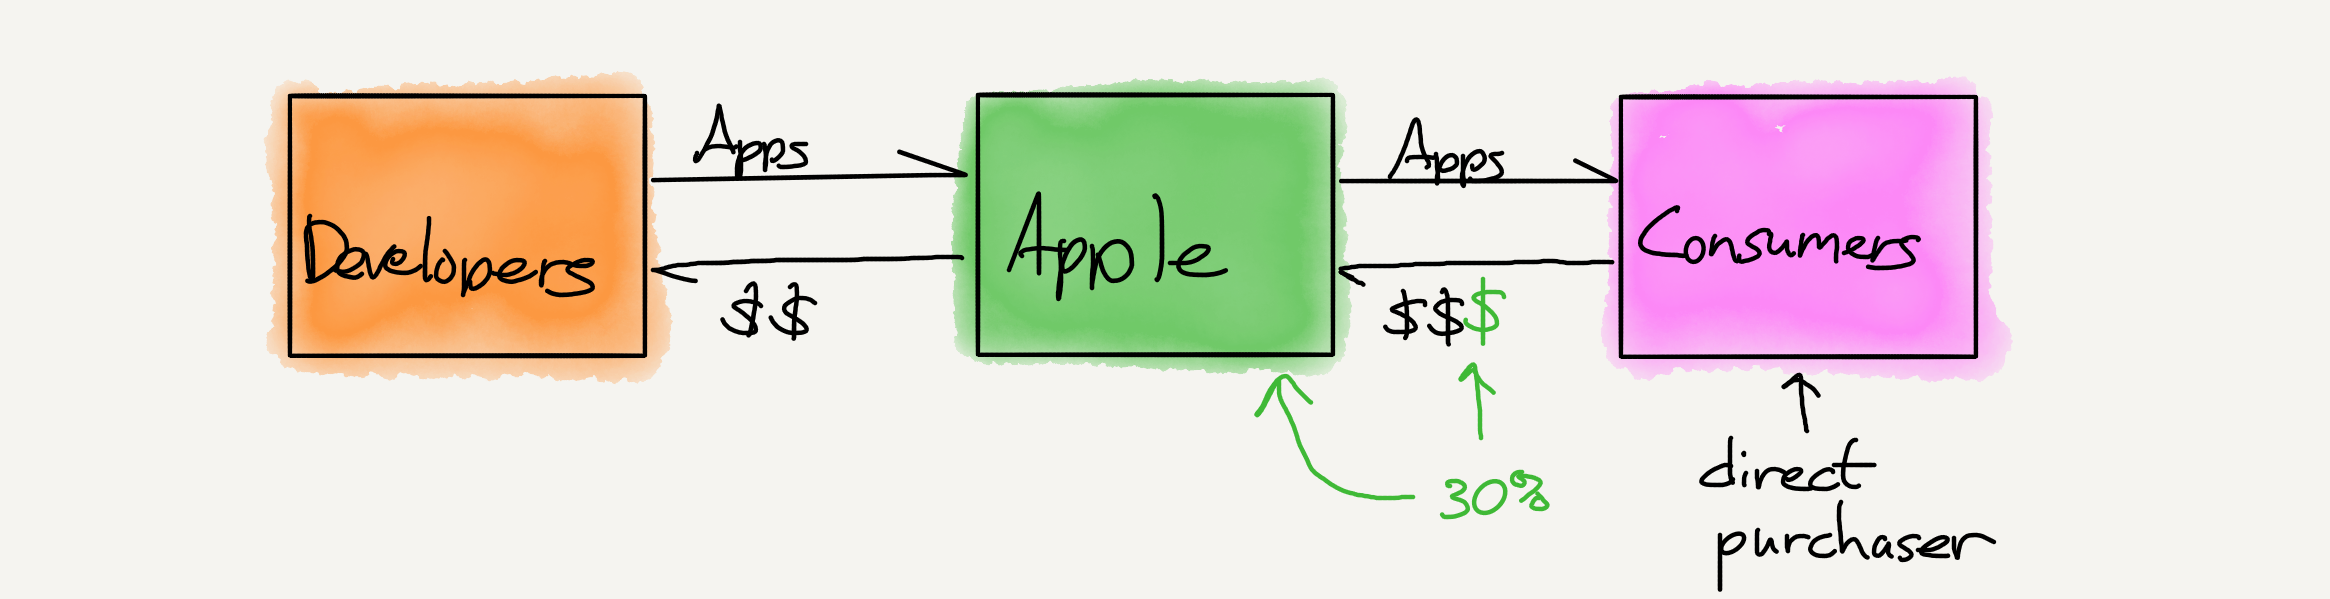 Stratechery By Ben Thompson On The Business Strategy And Impact Iphone 4 Screws Diagram Plaintiffs Characterization Of App Store Value Chain